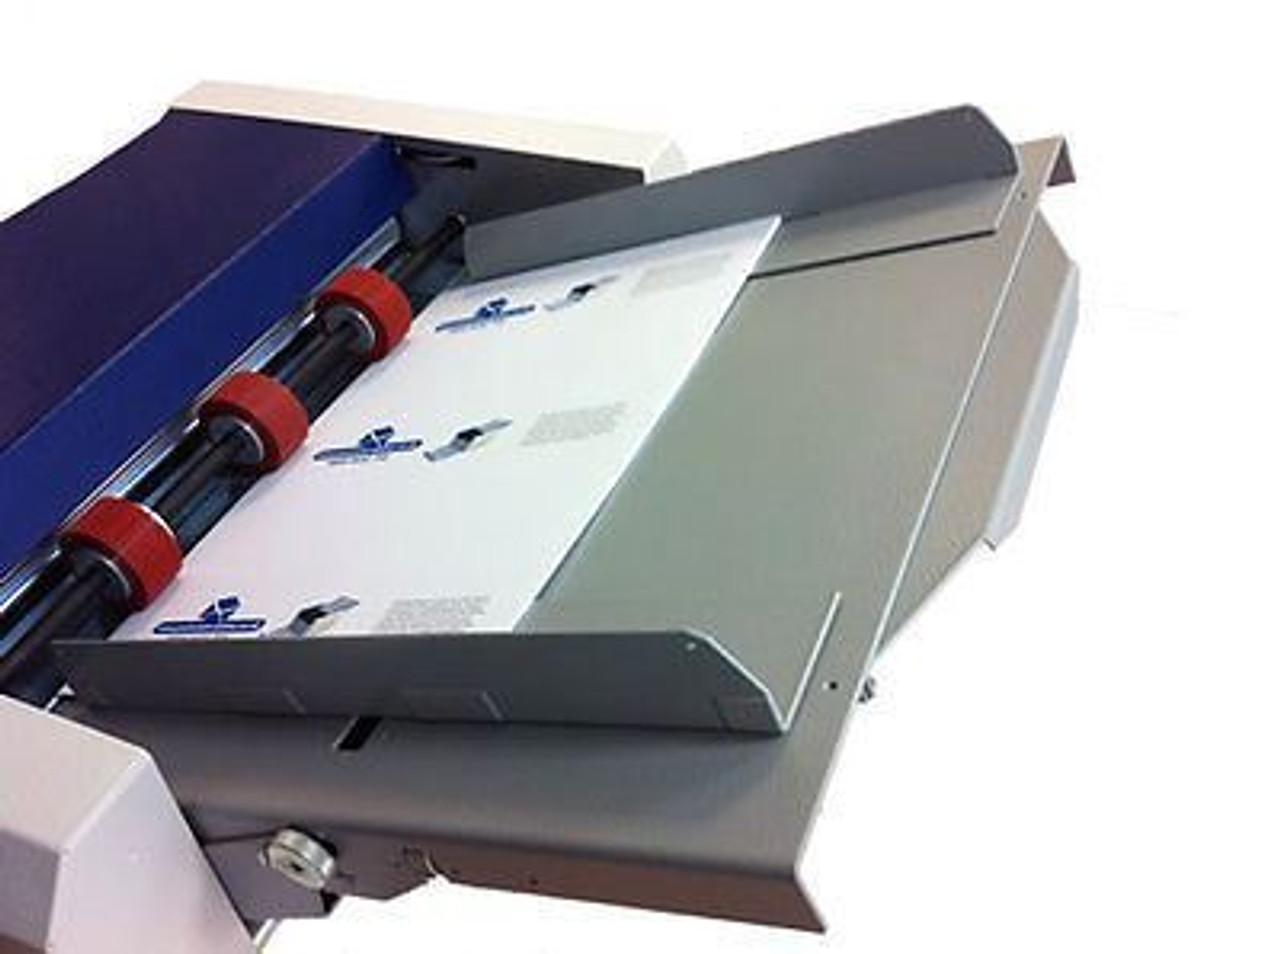 Cyklos RPM 350 Automatic Rotary Perforating Machine